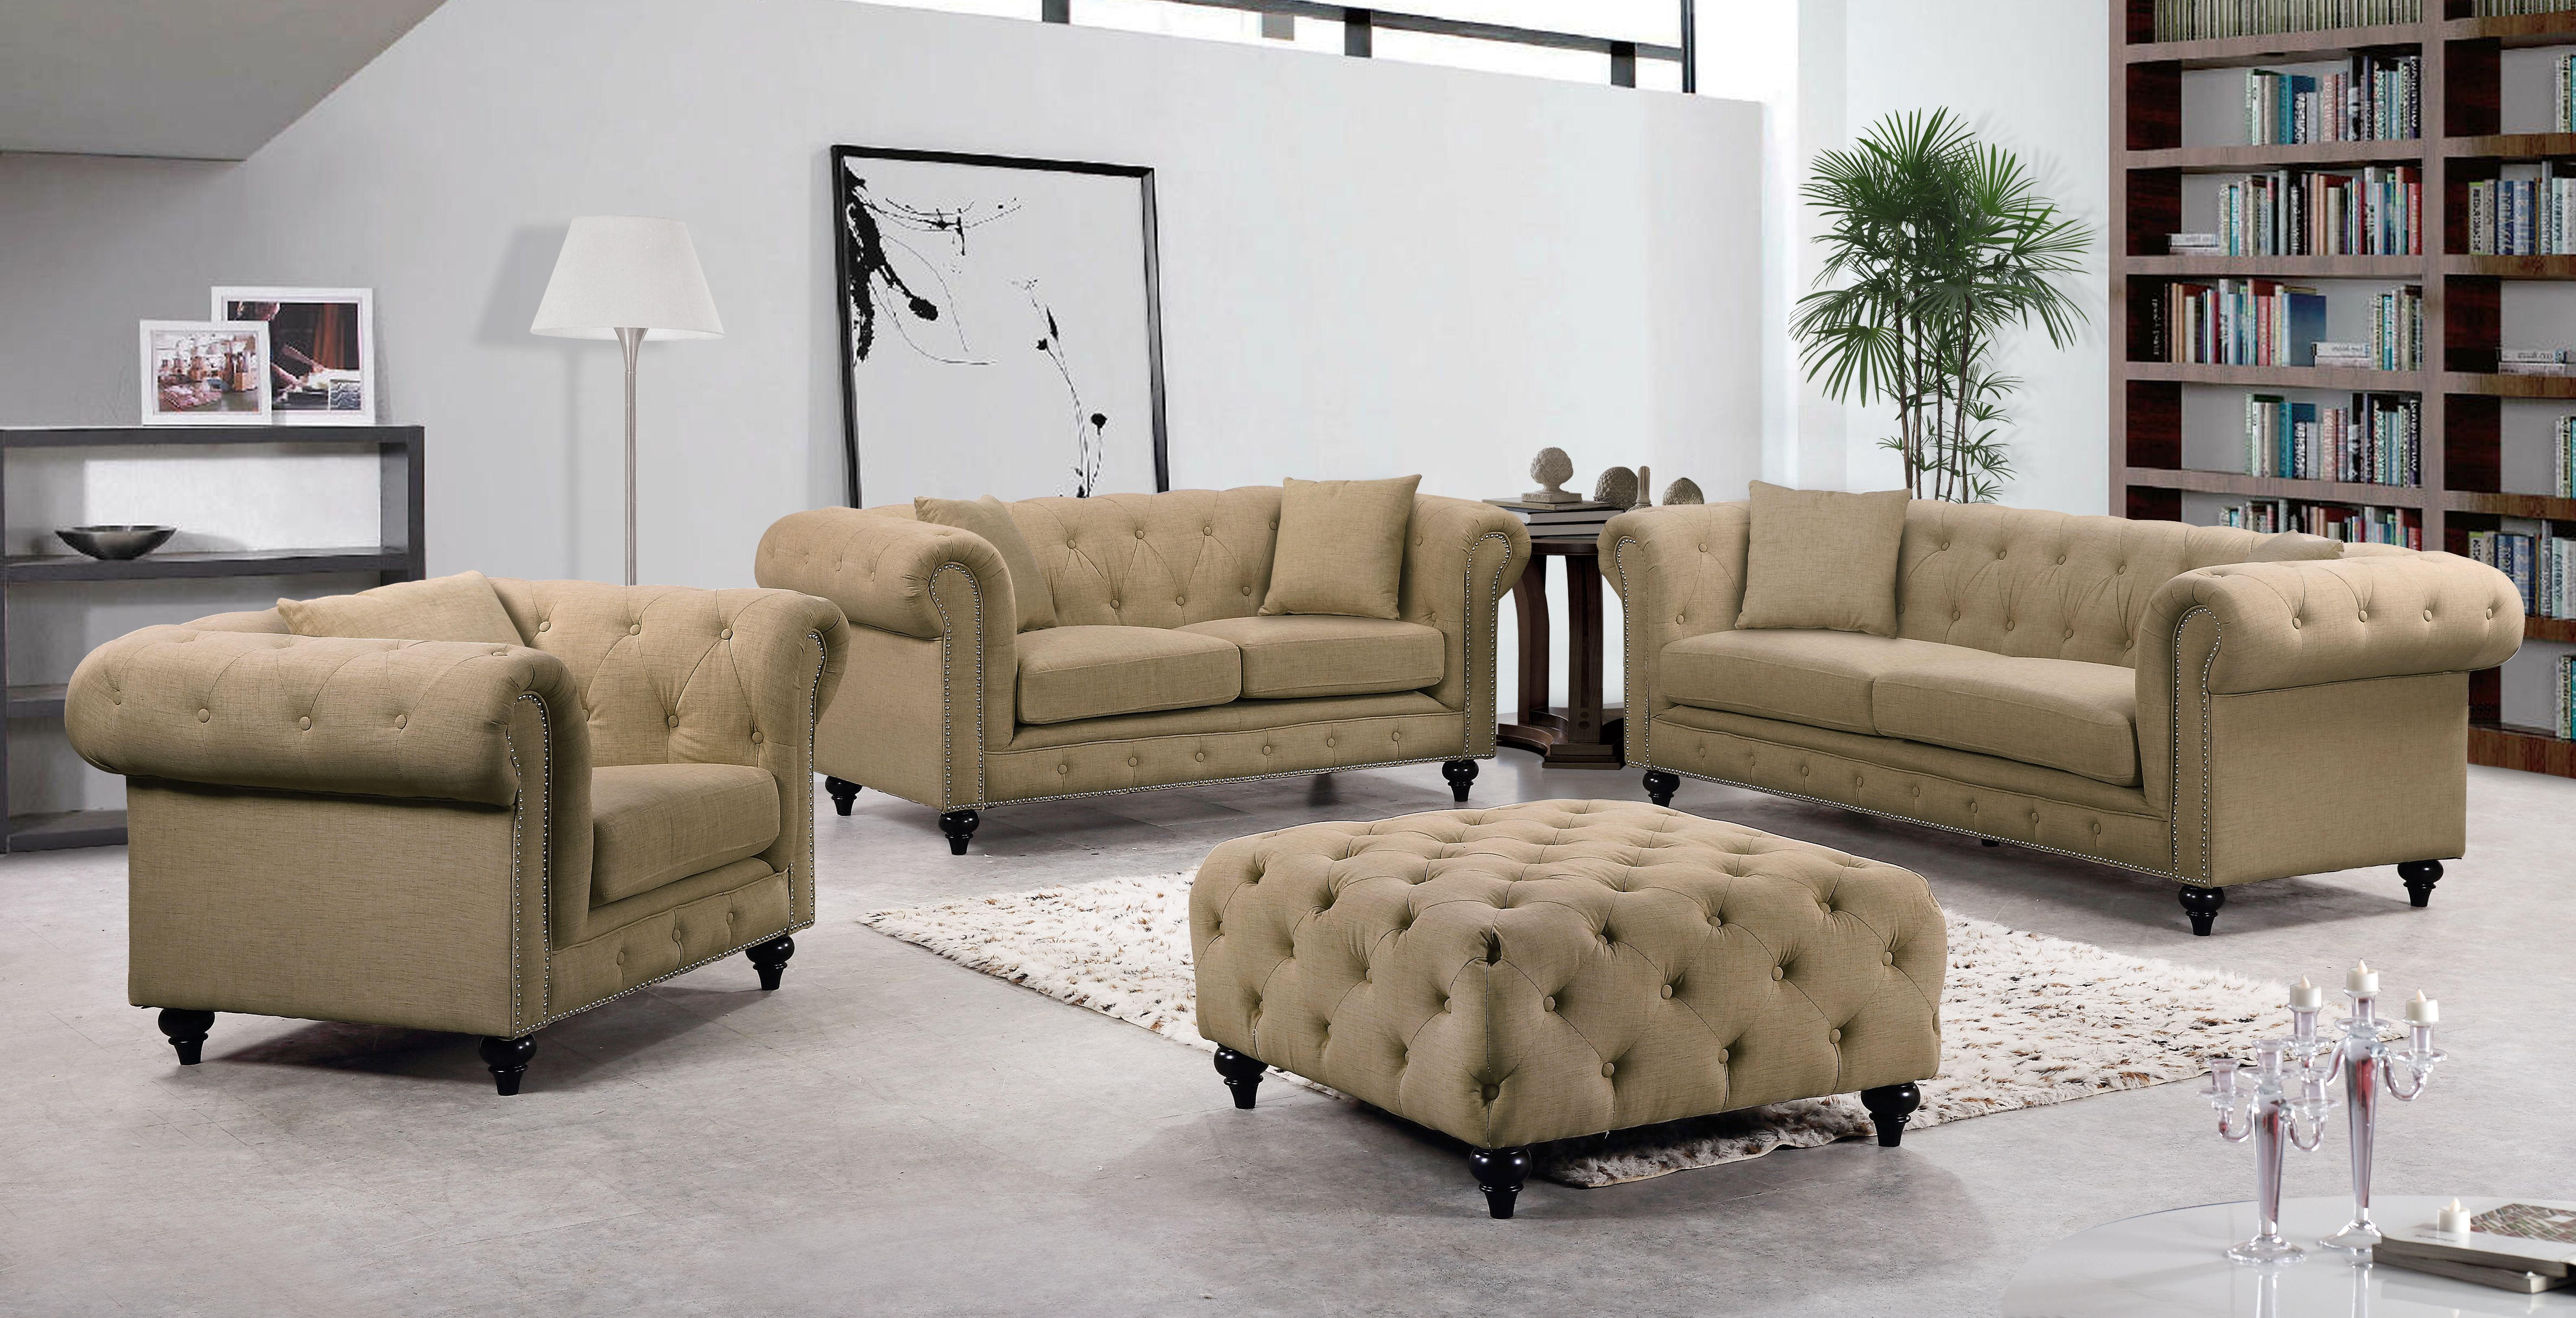 living ayathebook reclining furniture ashley com chairs room cream leather set a tosh damacio